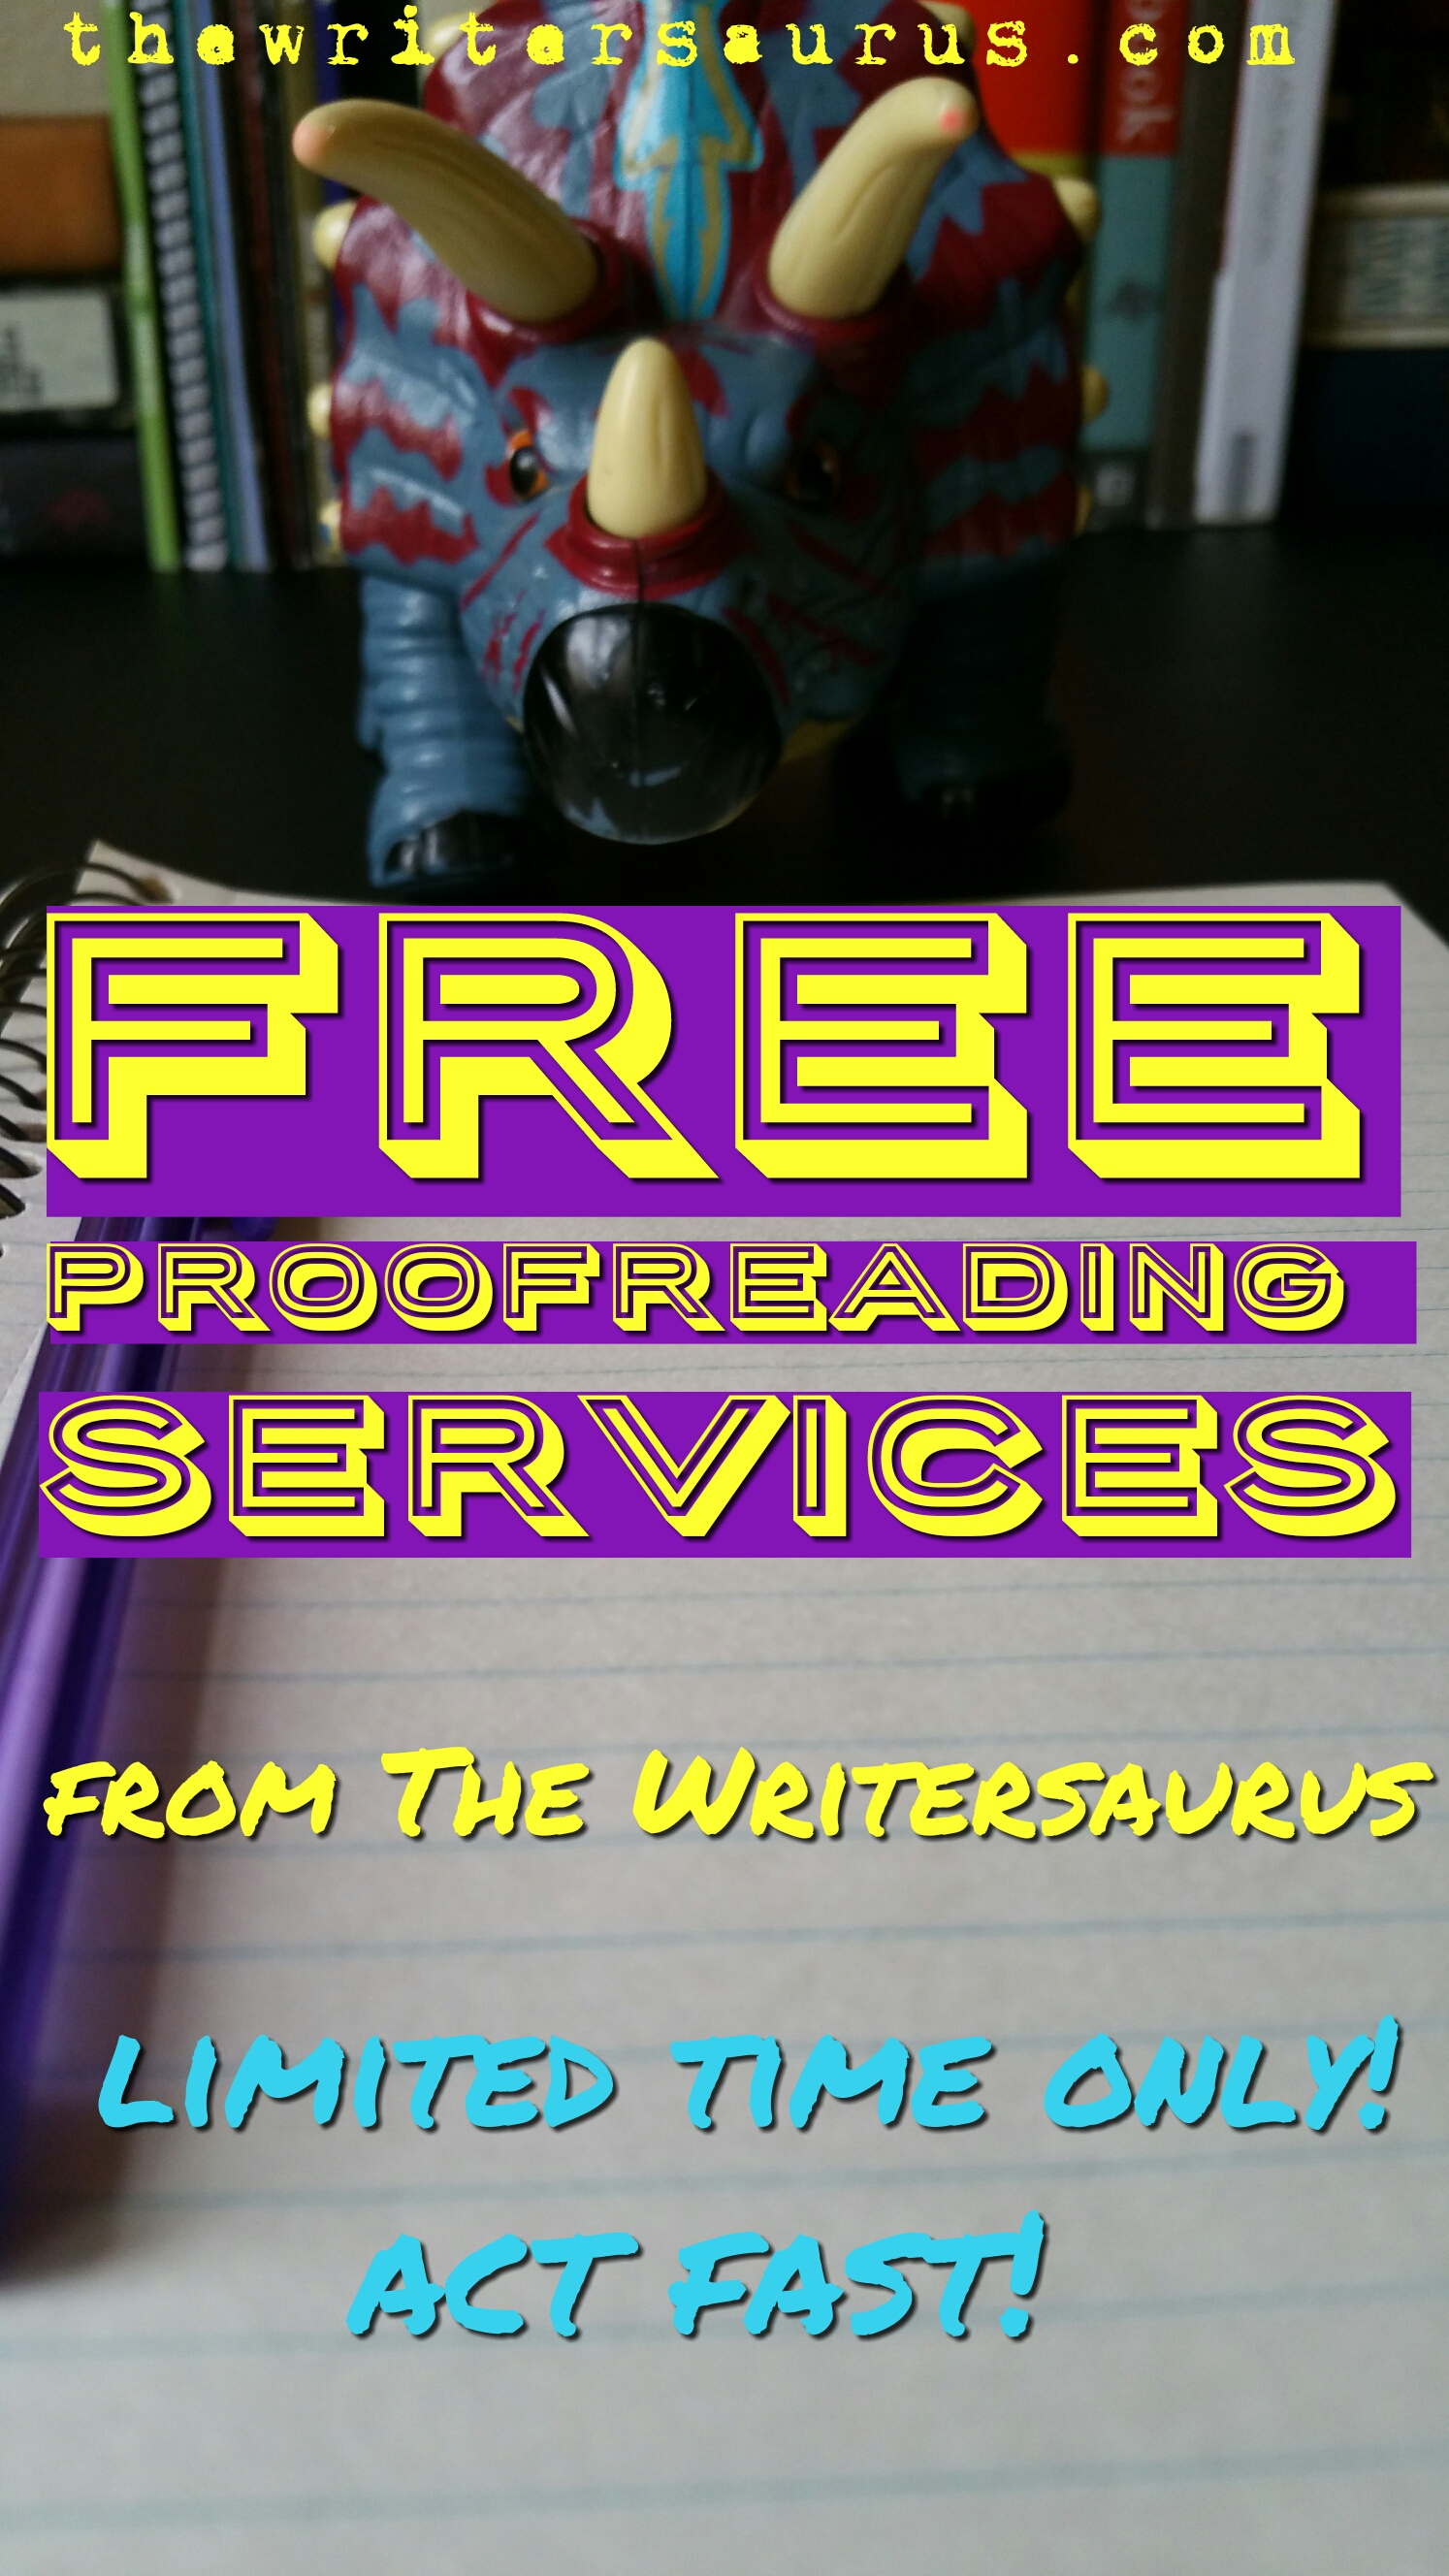 Proofreading services online work from home